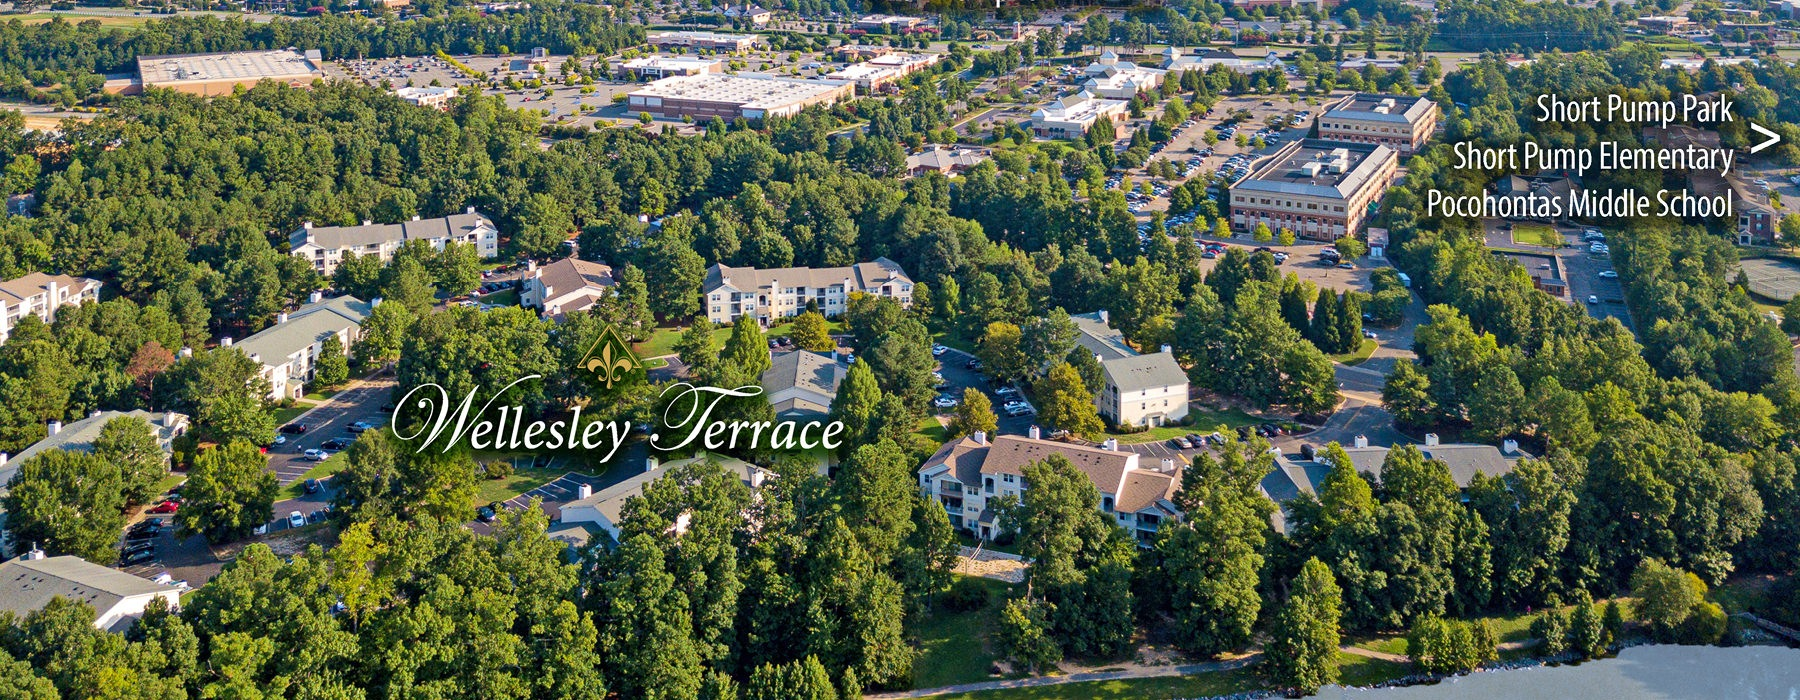 Lifestyle at Wellesley Terrace at Short Pump